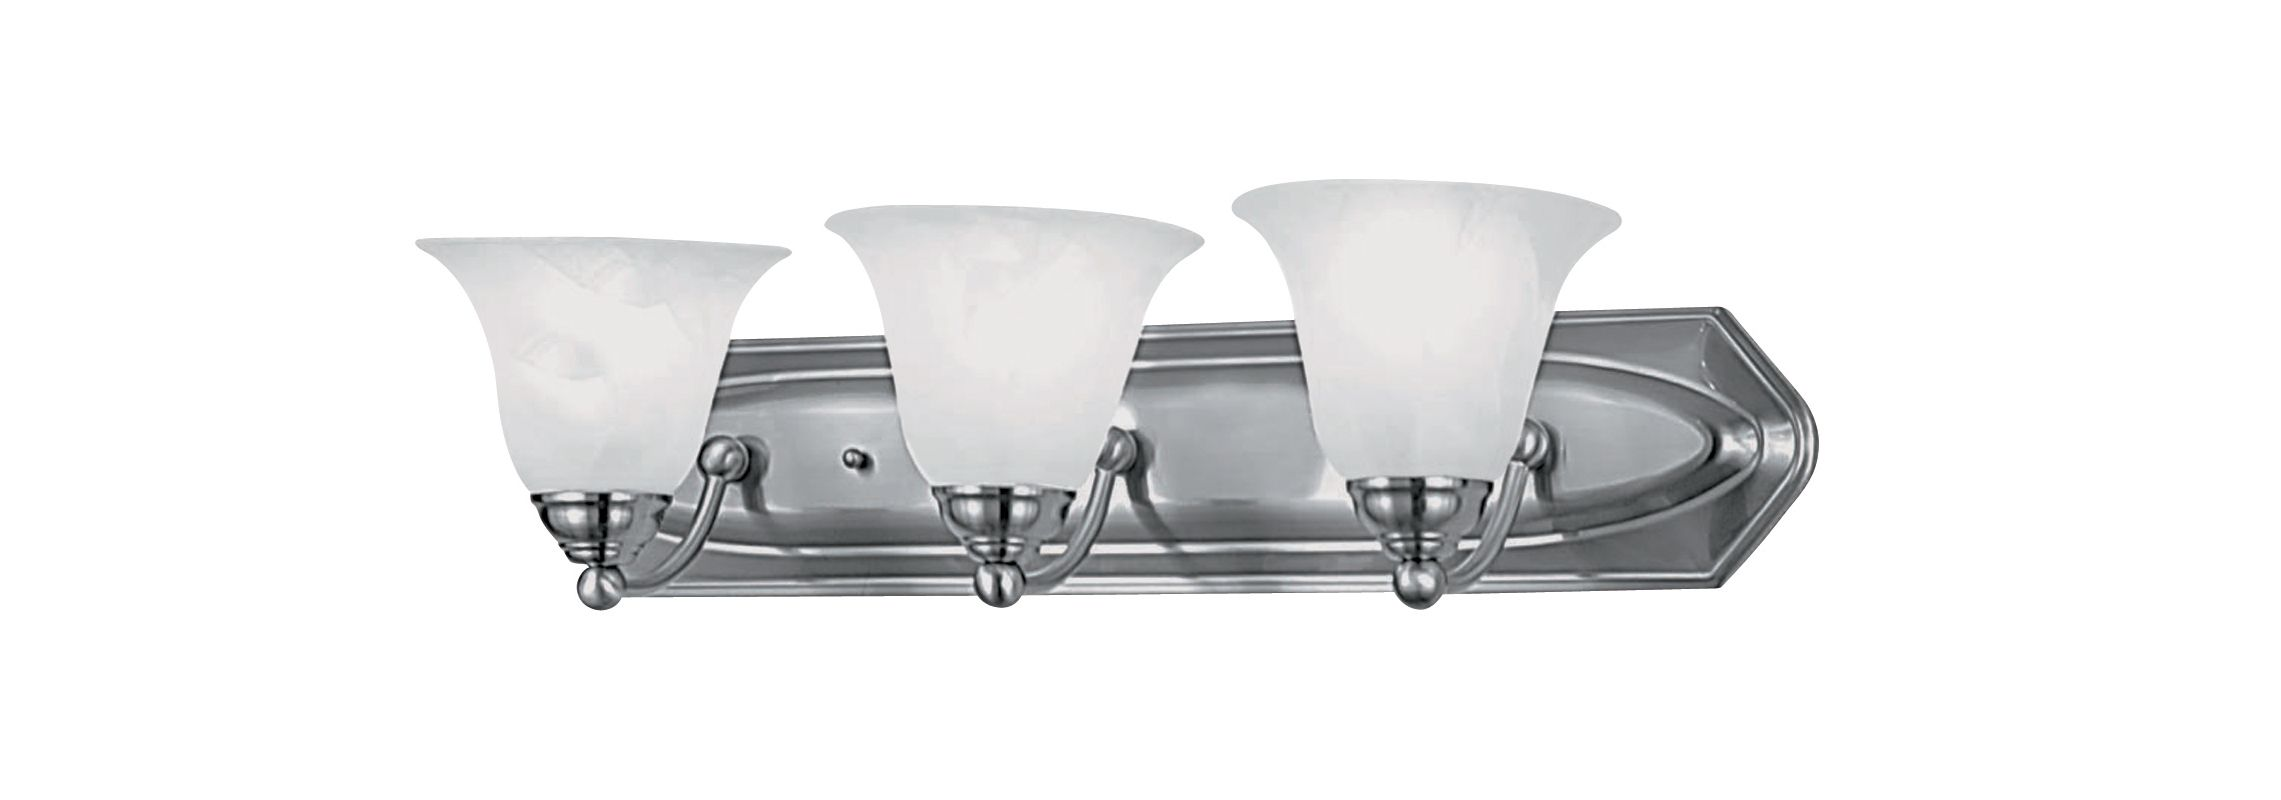 DVI Lighting DVP42403 Diamond 3 Light Incandescent Bathroom Vanity Sale $112.75 ITEM: bci1371533 ID#:DVP42403SN UPC: 61467423573 :